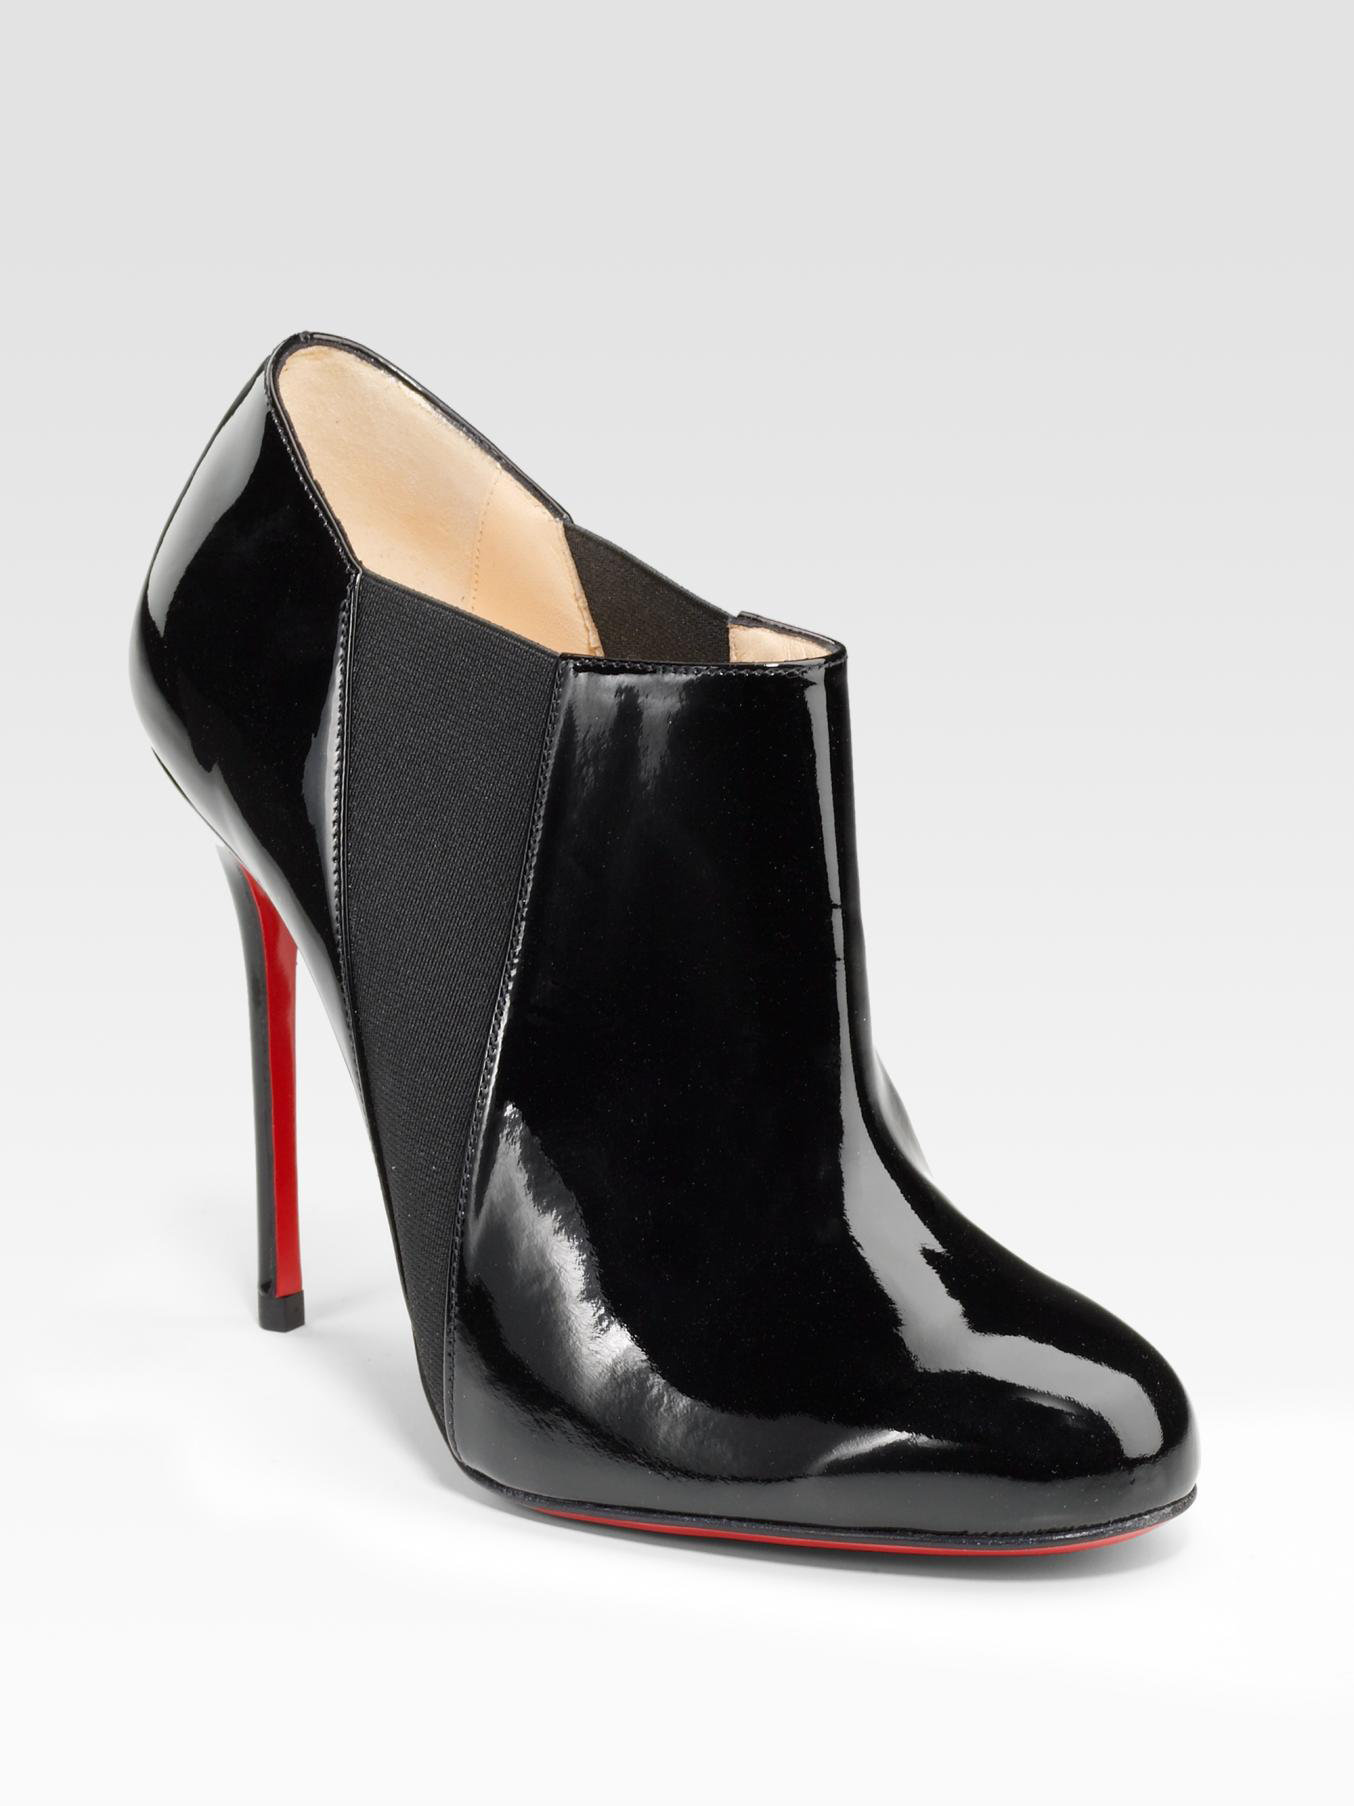 b15854fb4198 ... store lyst christian louboutin patent leather ankle boots in black  70663 f8f14